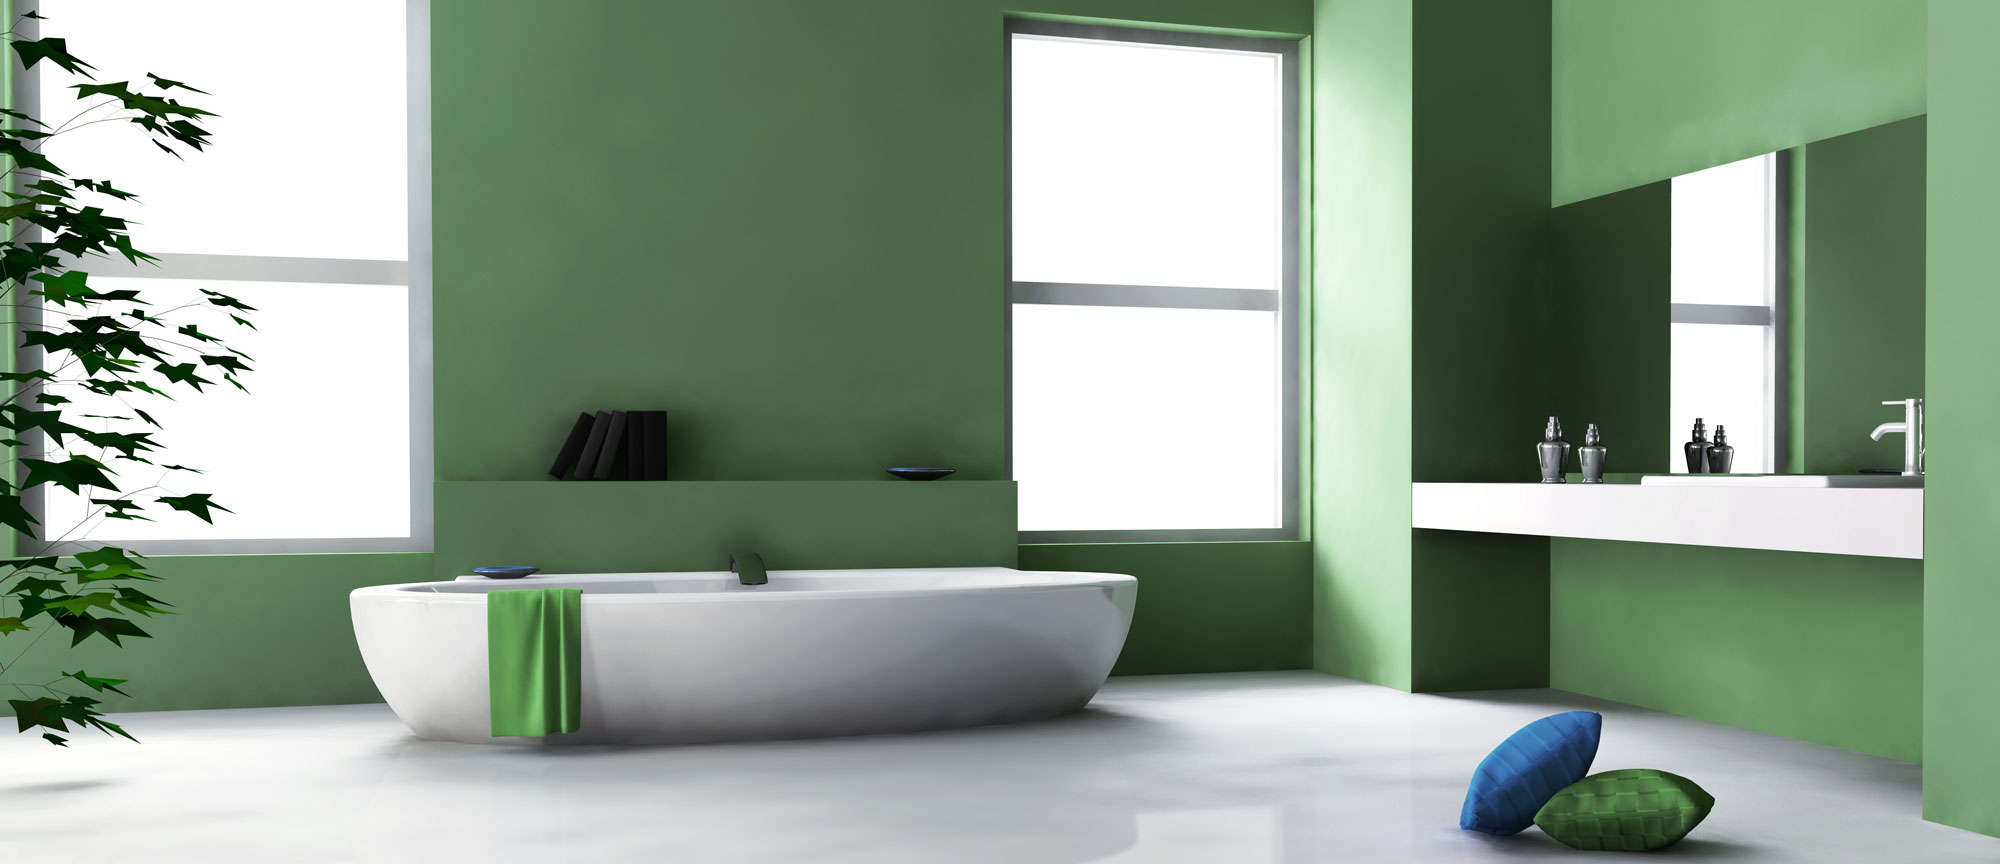 Custom Bathrooms Designed To Fit Your Lifestyleu2026